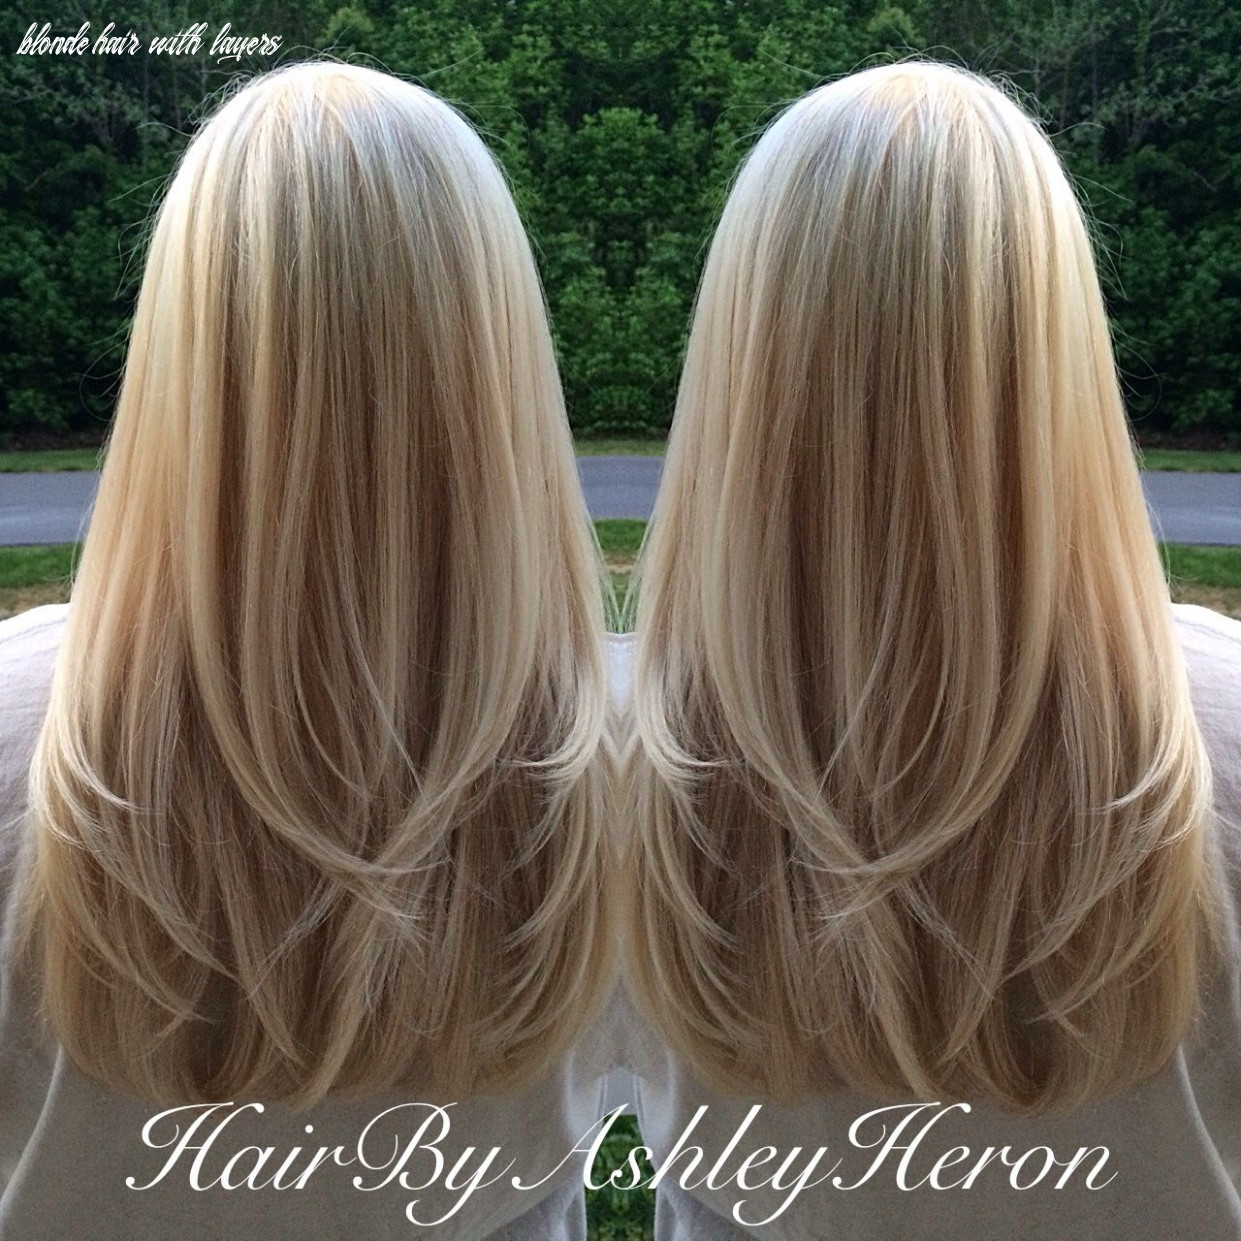 Multidimensional blonde with long layers @missmr12 | hair